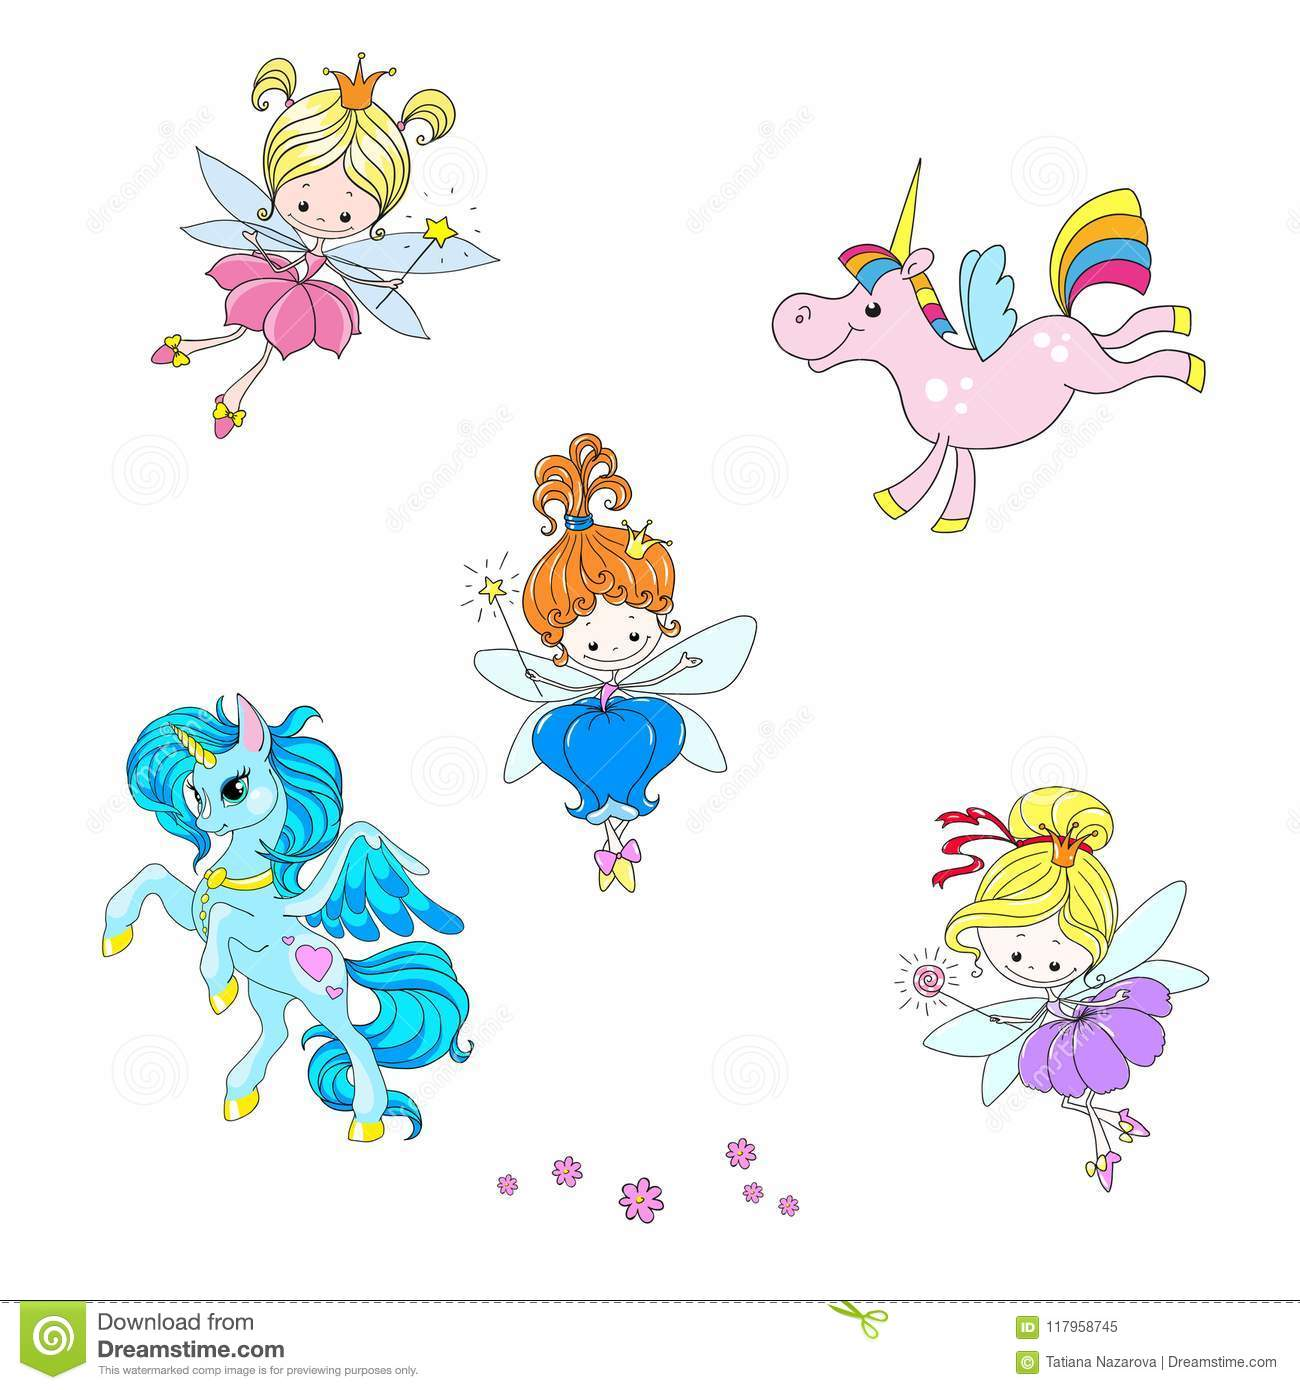 Discussion on this topic: How to Collect Unicorns, how-to-collect-unicorns/